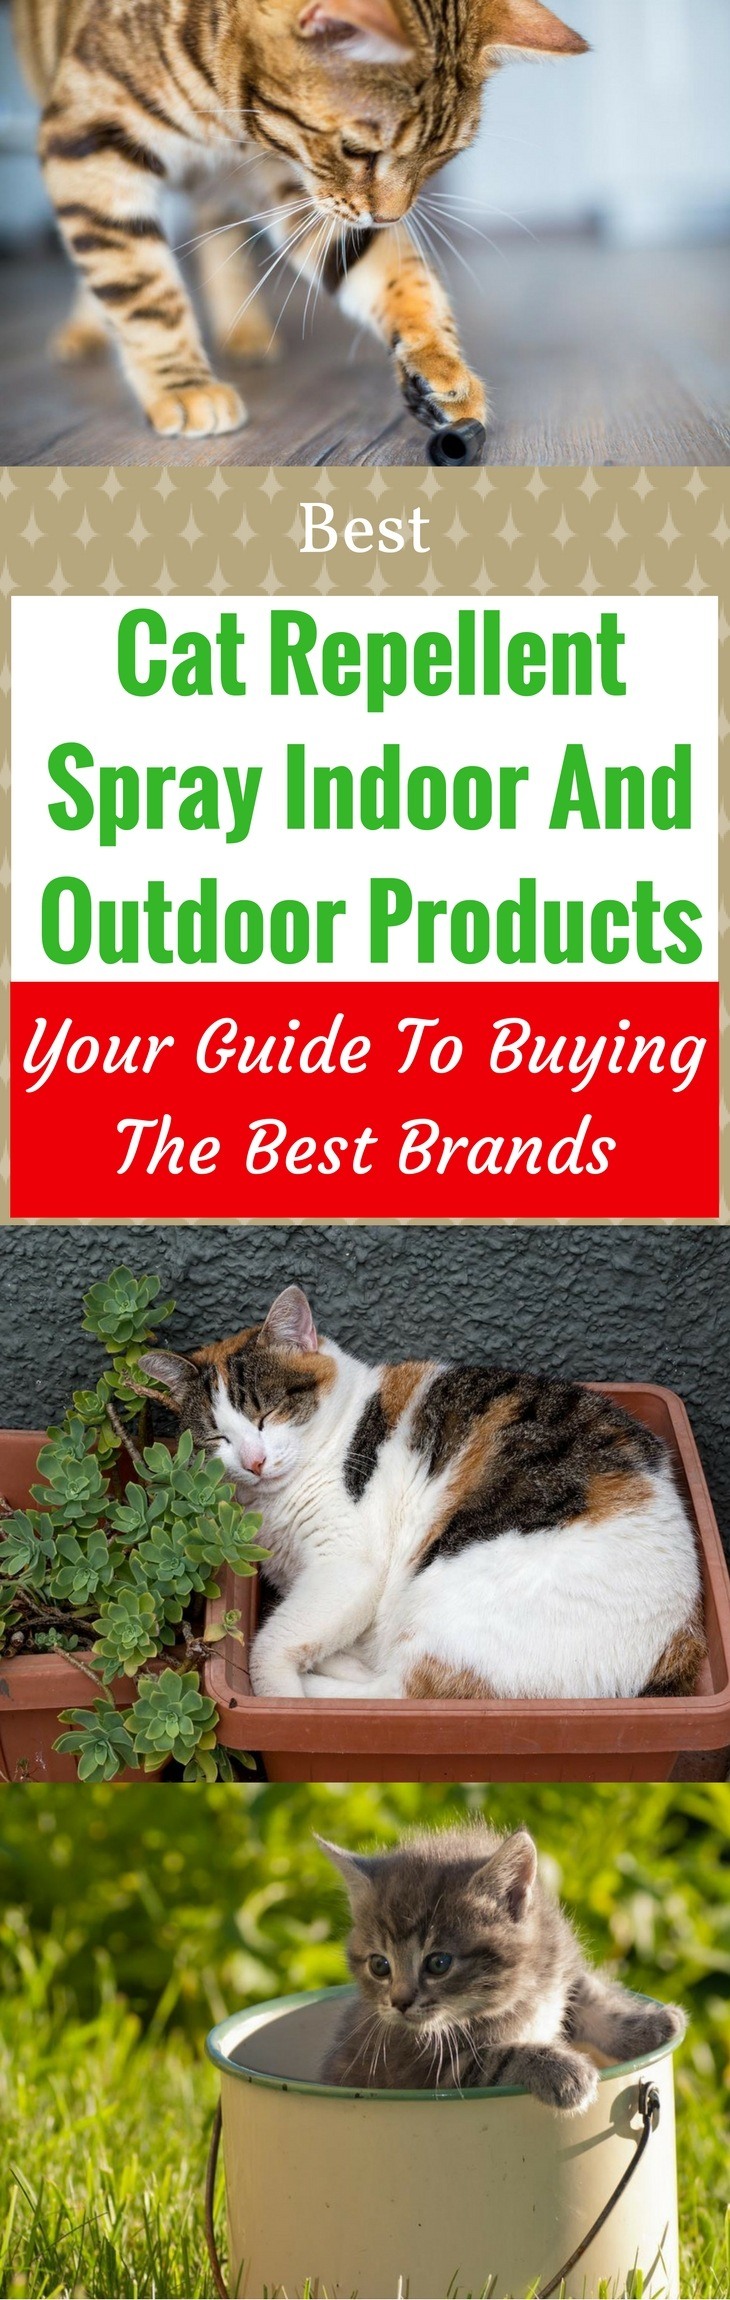 Best Cat Repellent Spray Indoor And Outdoor Products